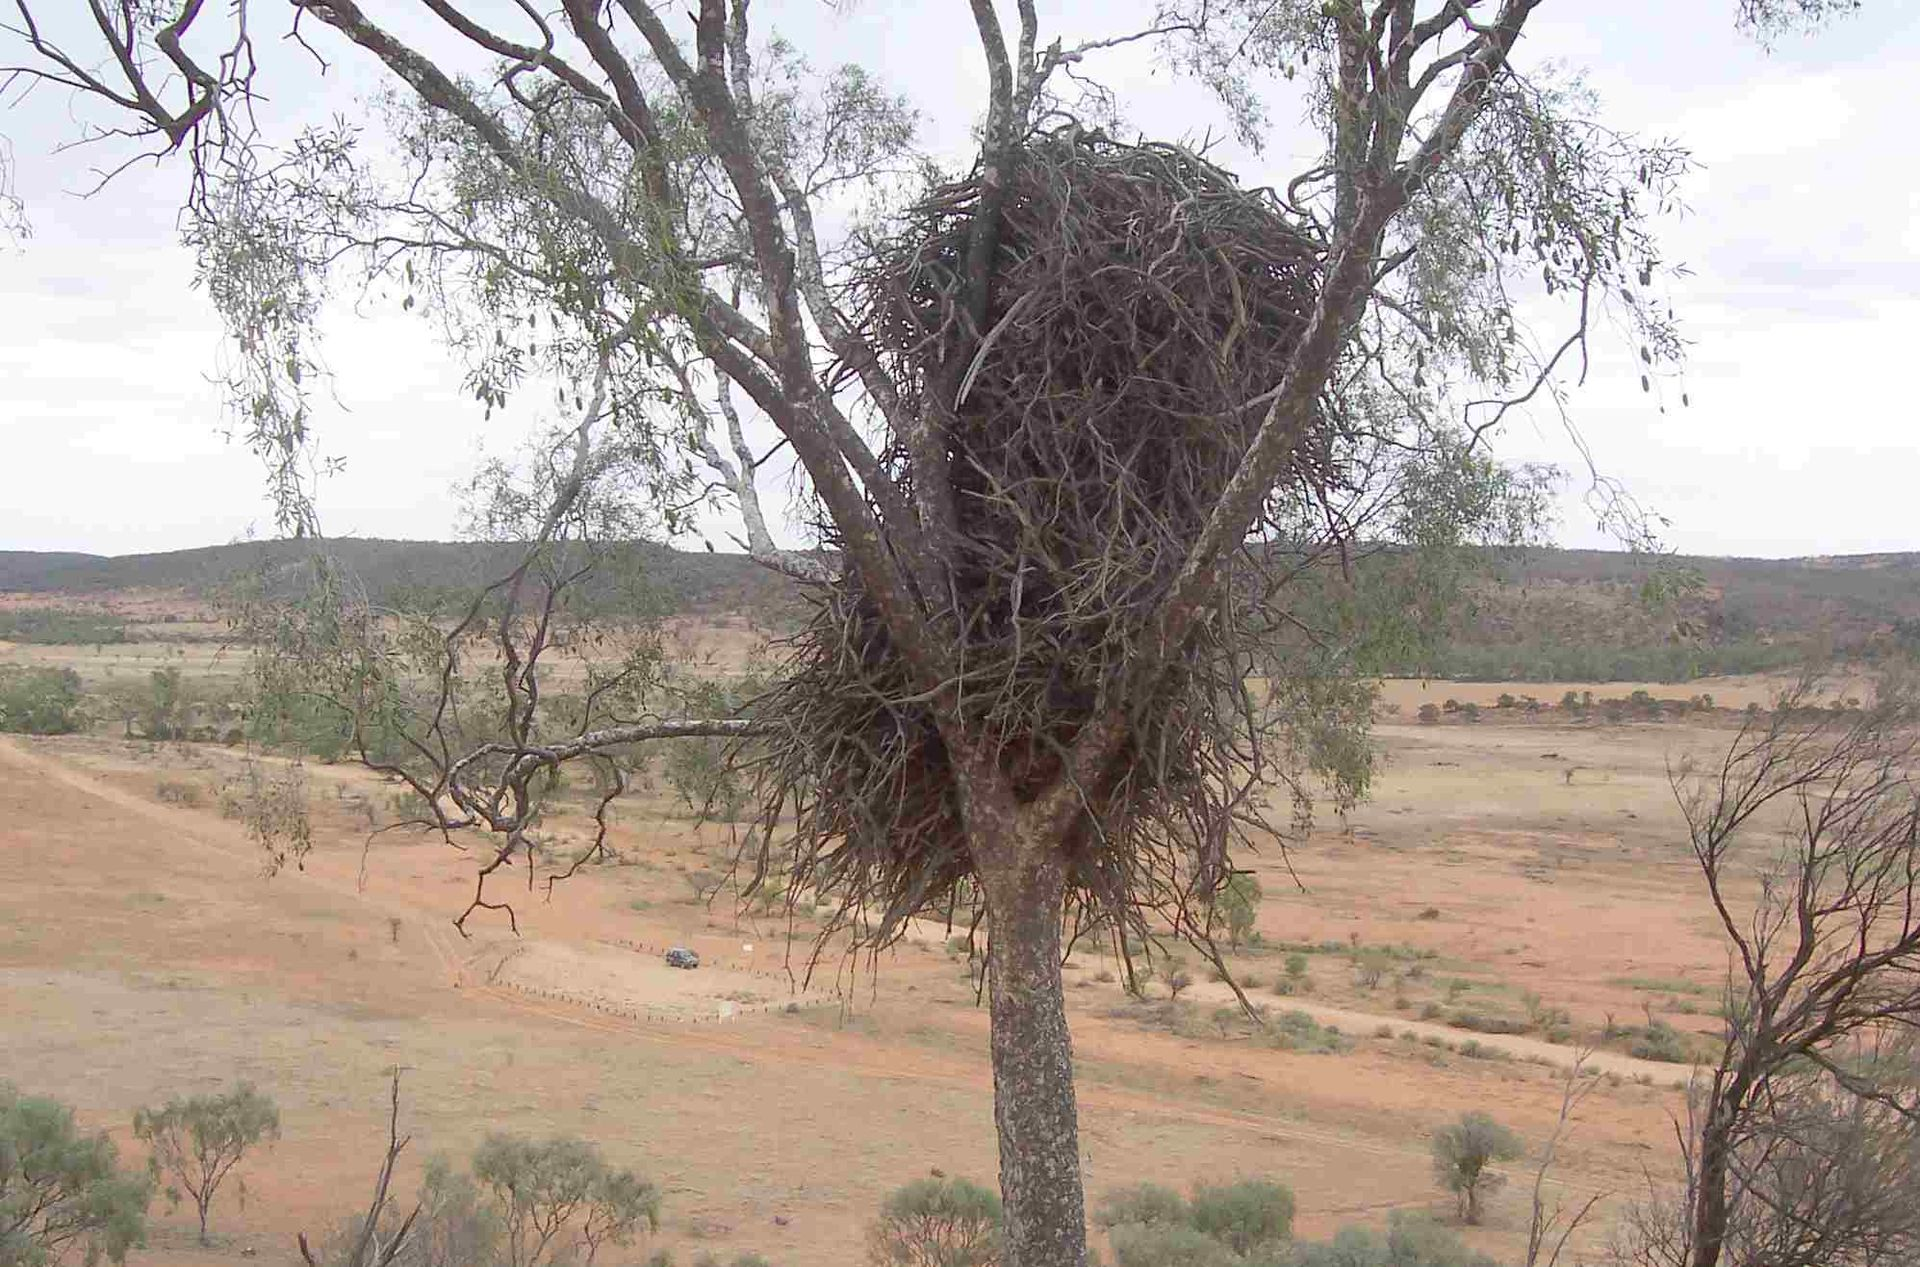 Wedge-tailed eagle nest